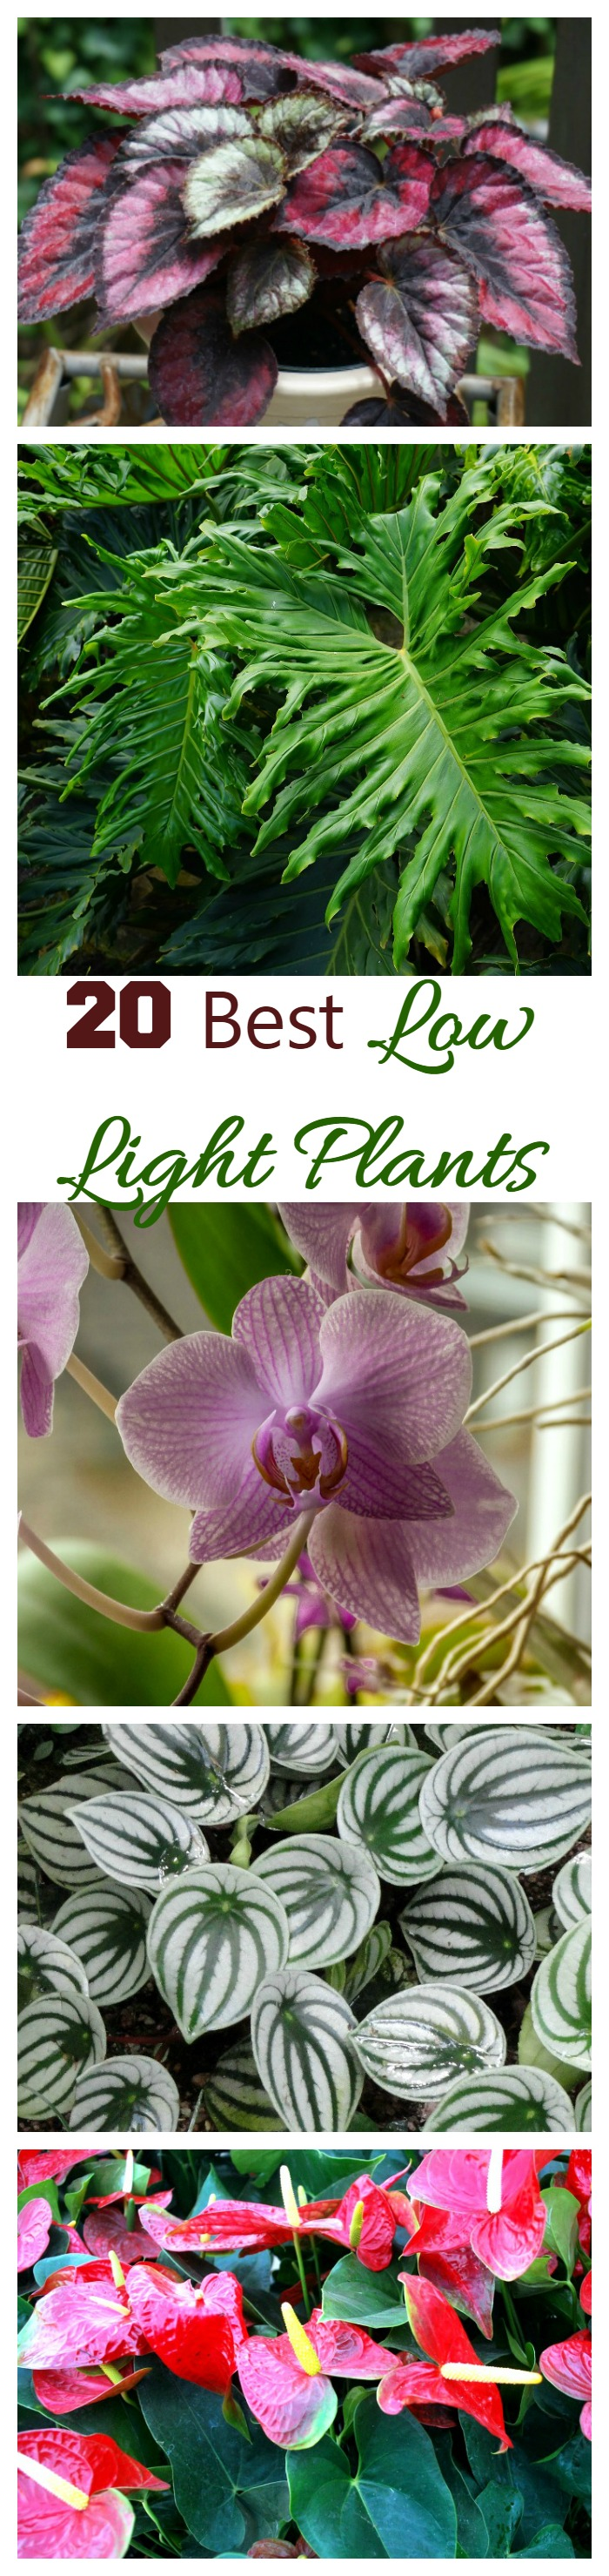 These 20 low light indoor plants can grow in less than optimal light conditions. Some require bright diffused light and other can do well even in dark corners.